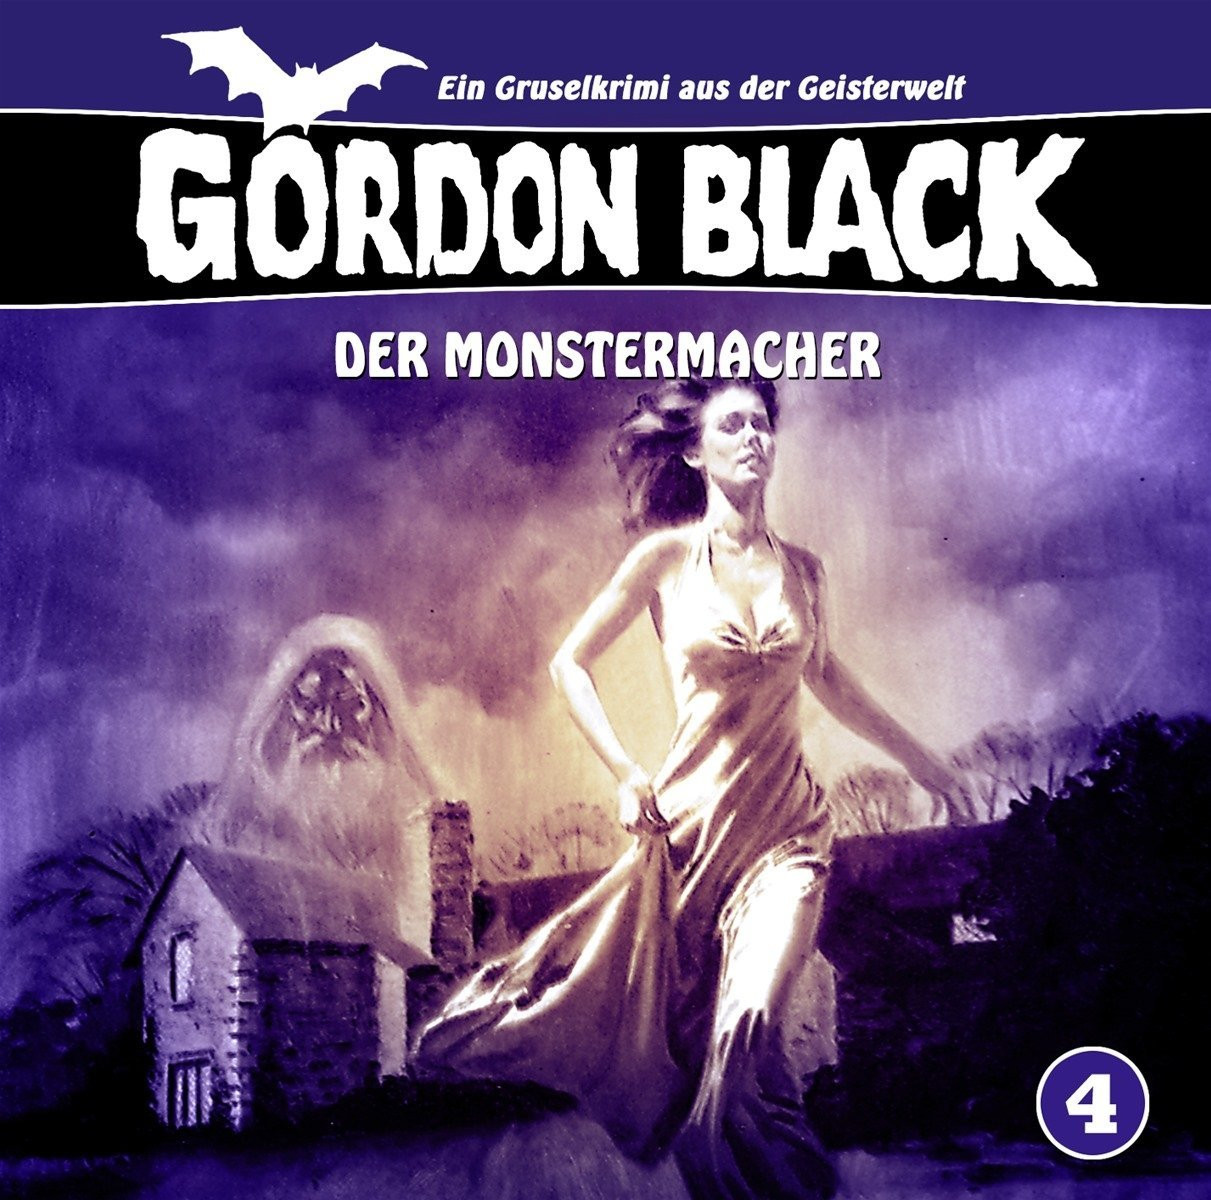 Gordon Black - Folge 4: Der Monstermacher